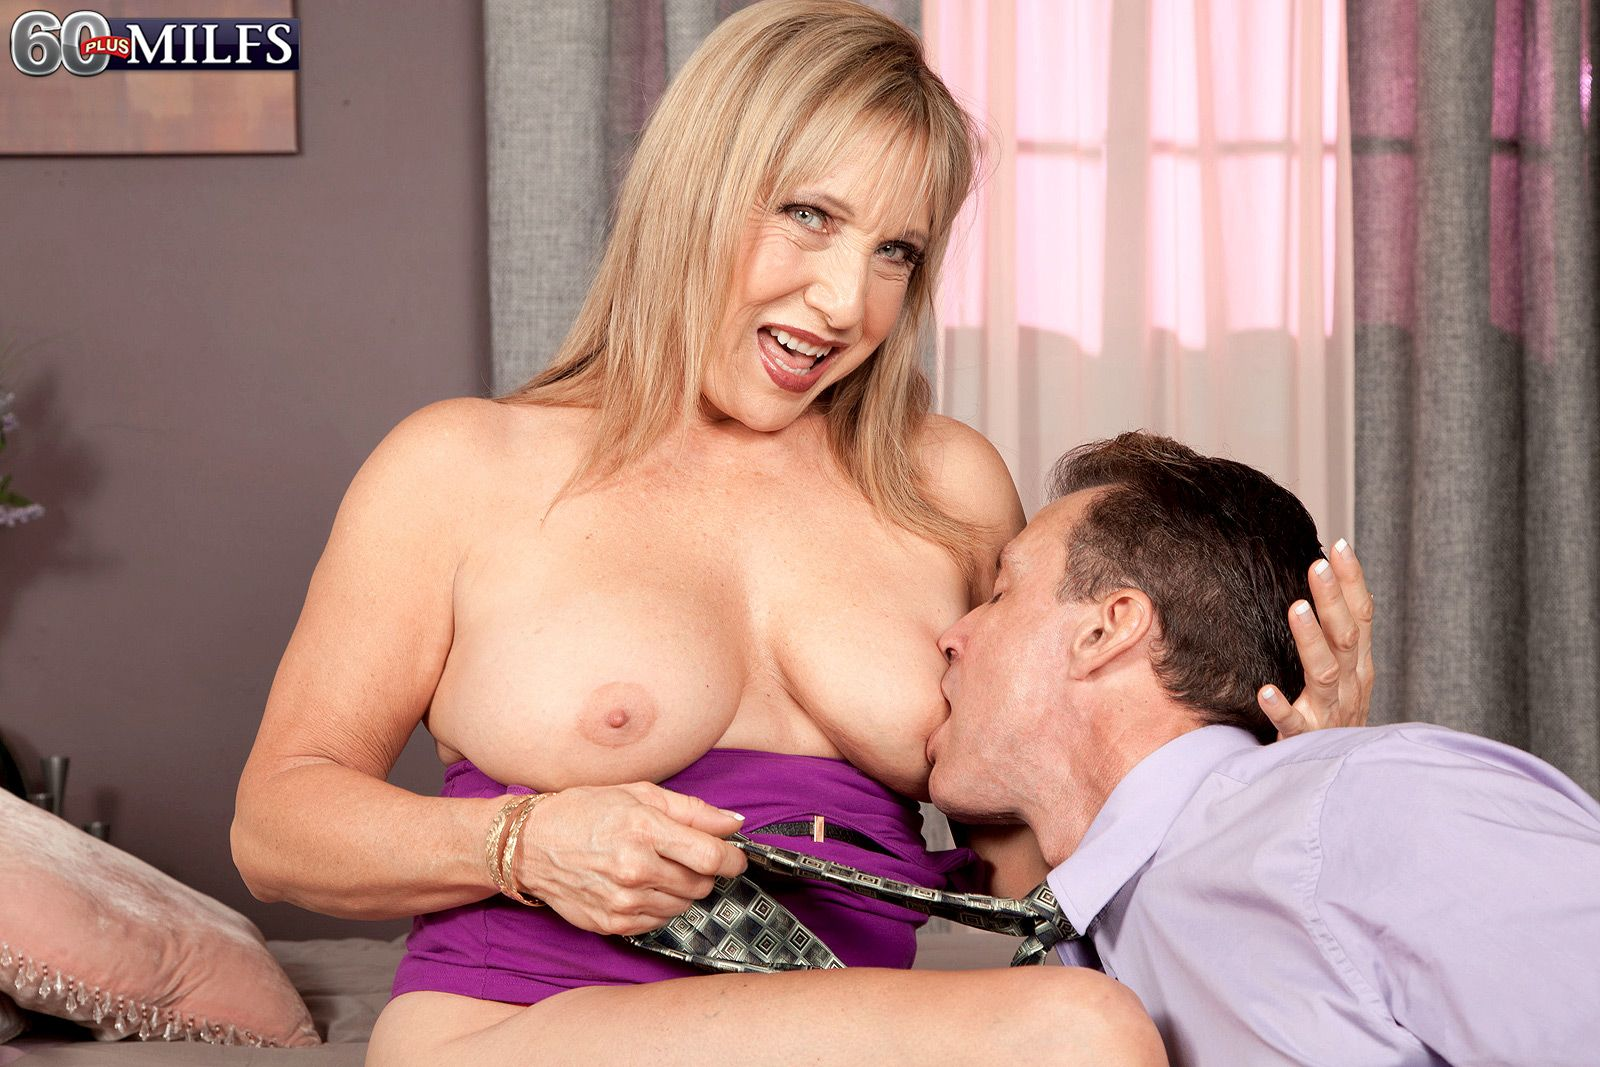 Hot MILFS like 60+ blonde babe Luna Azul and her big natural tits are the bomb